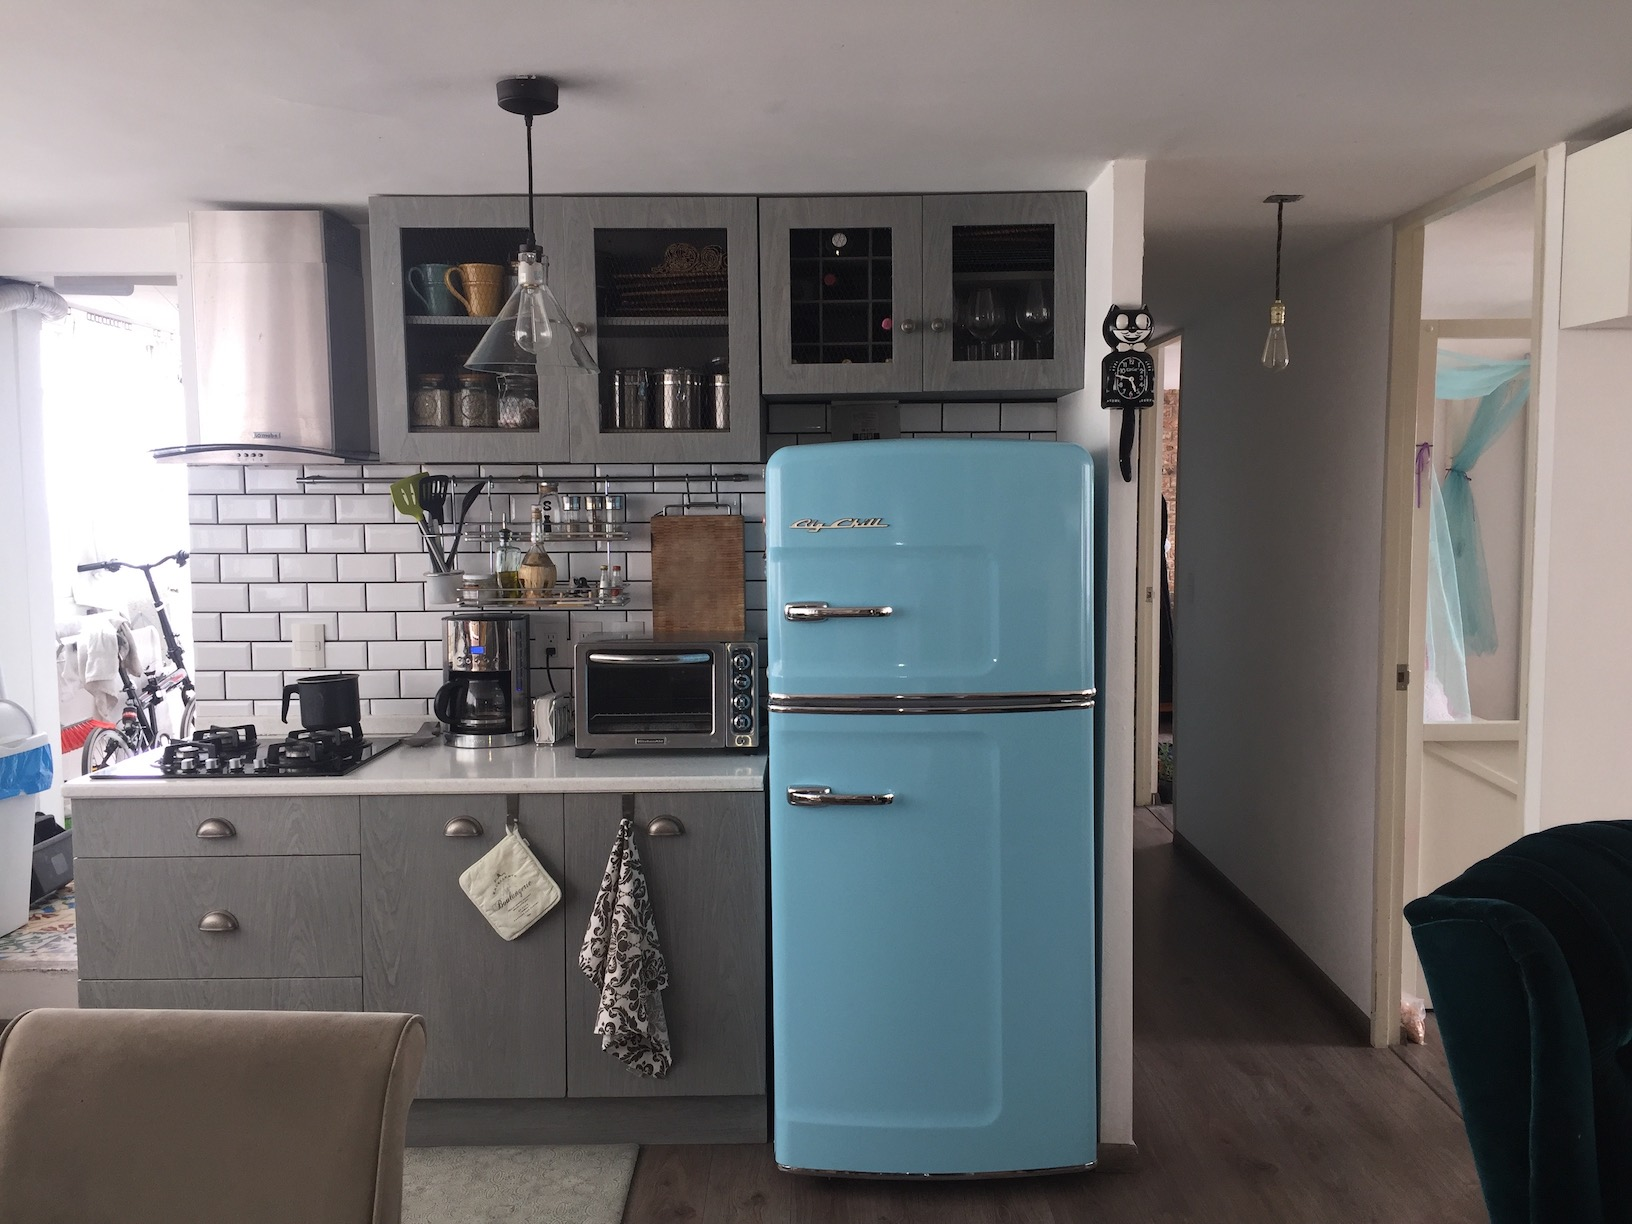 13 Must See Retro Big Chill Kitchen Layouts - Retro-kitchen-design-you-never-seen-before